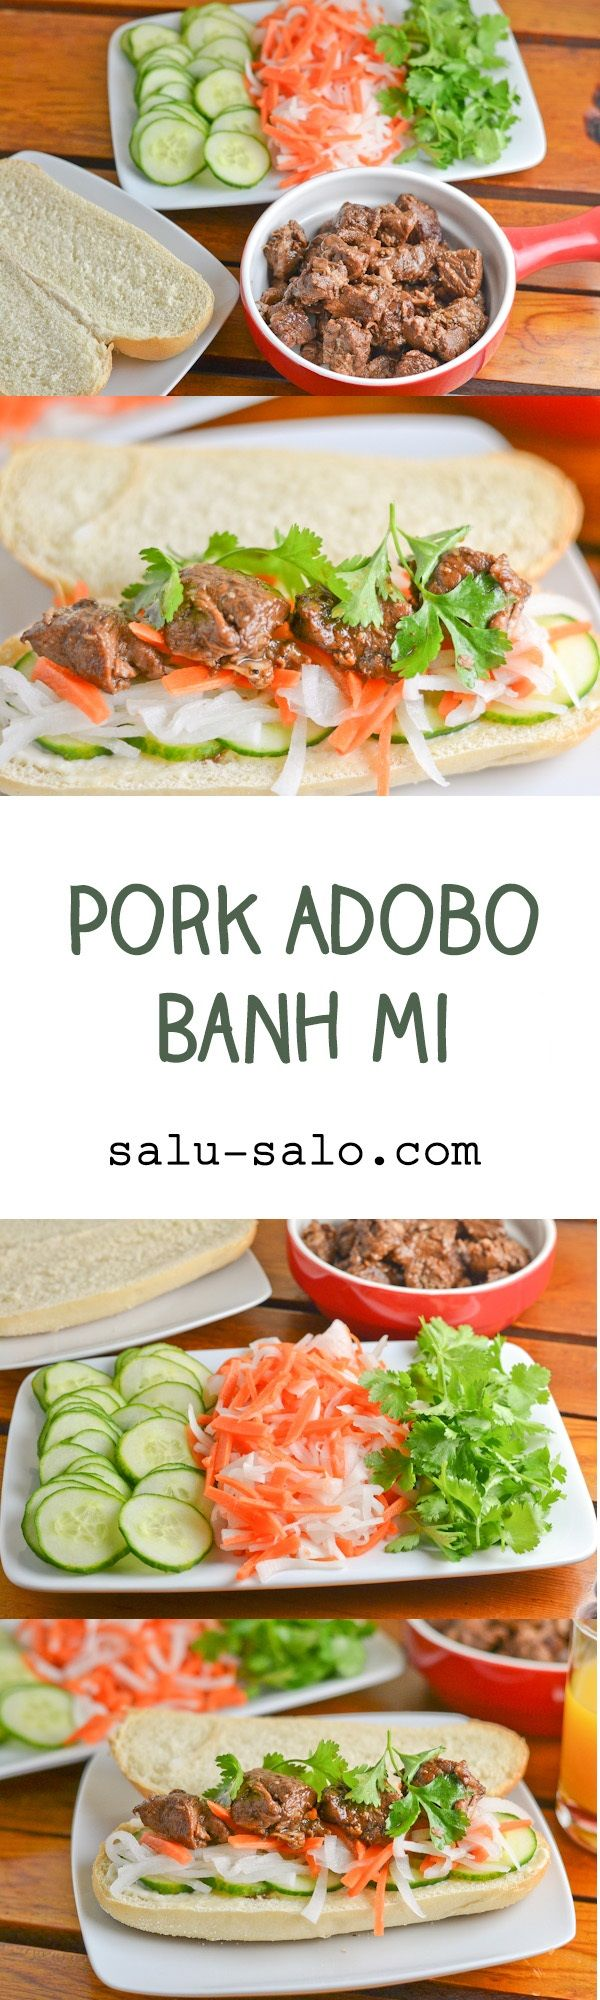 Pork Adobo Banh Mi - a popular Vietnamese sandwich with a Filipino twist.